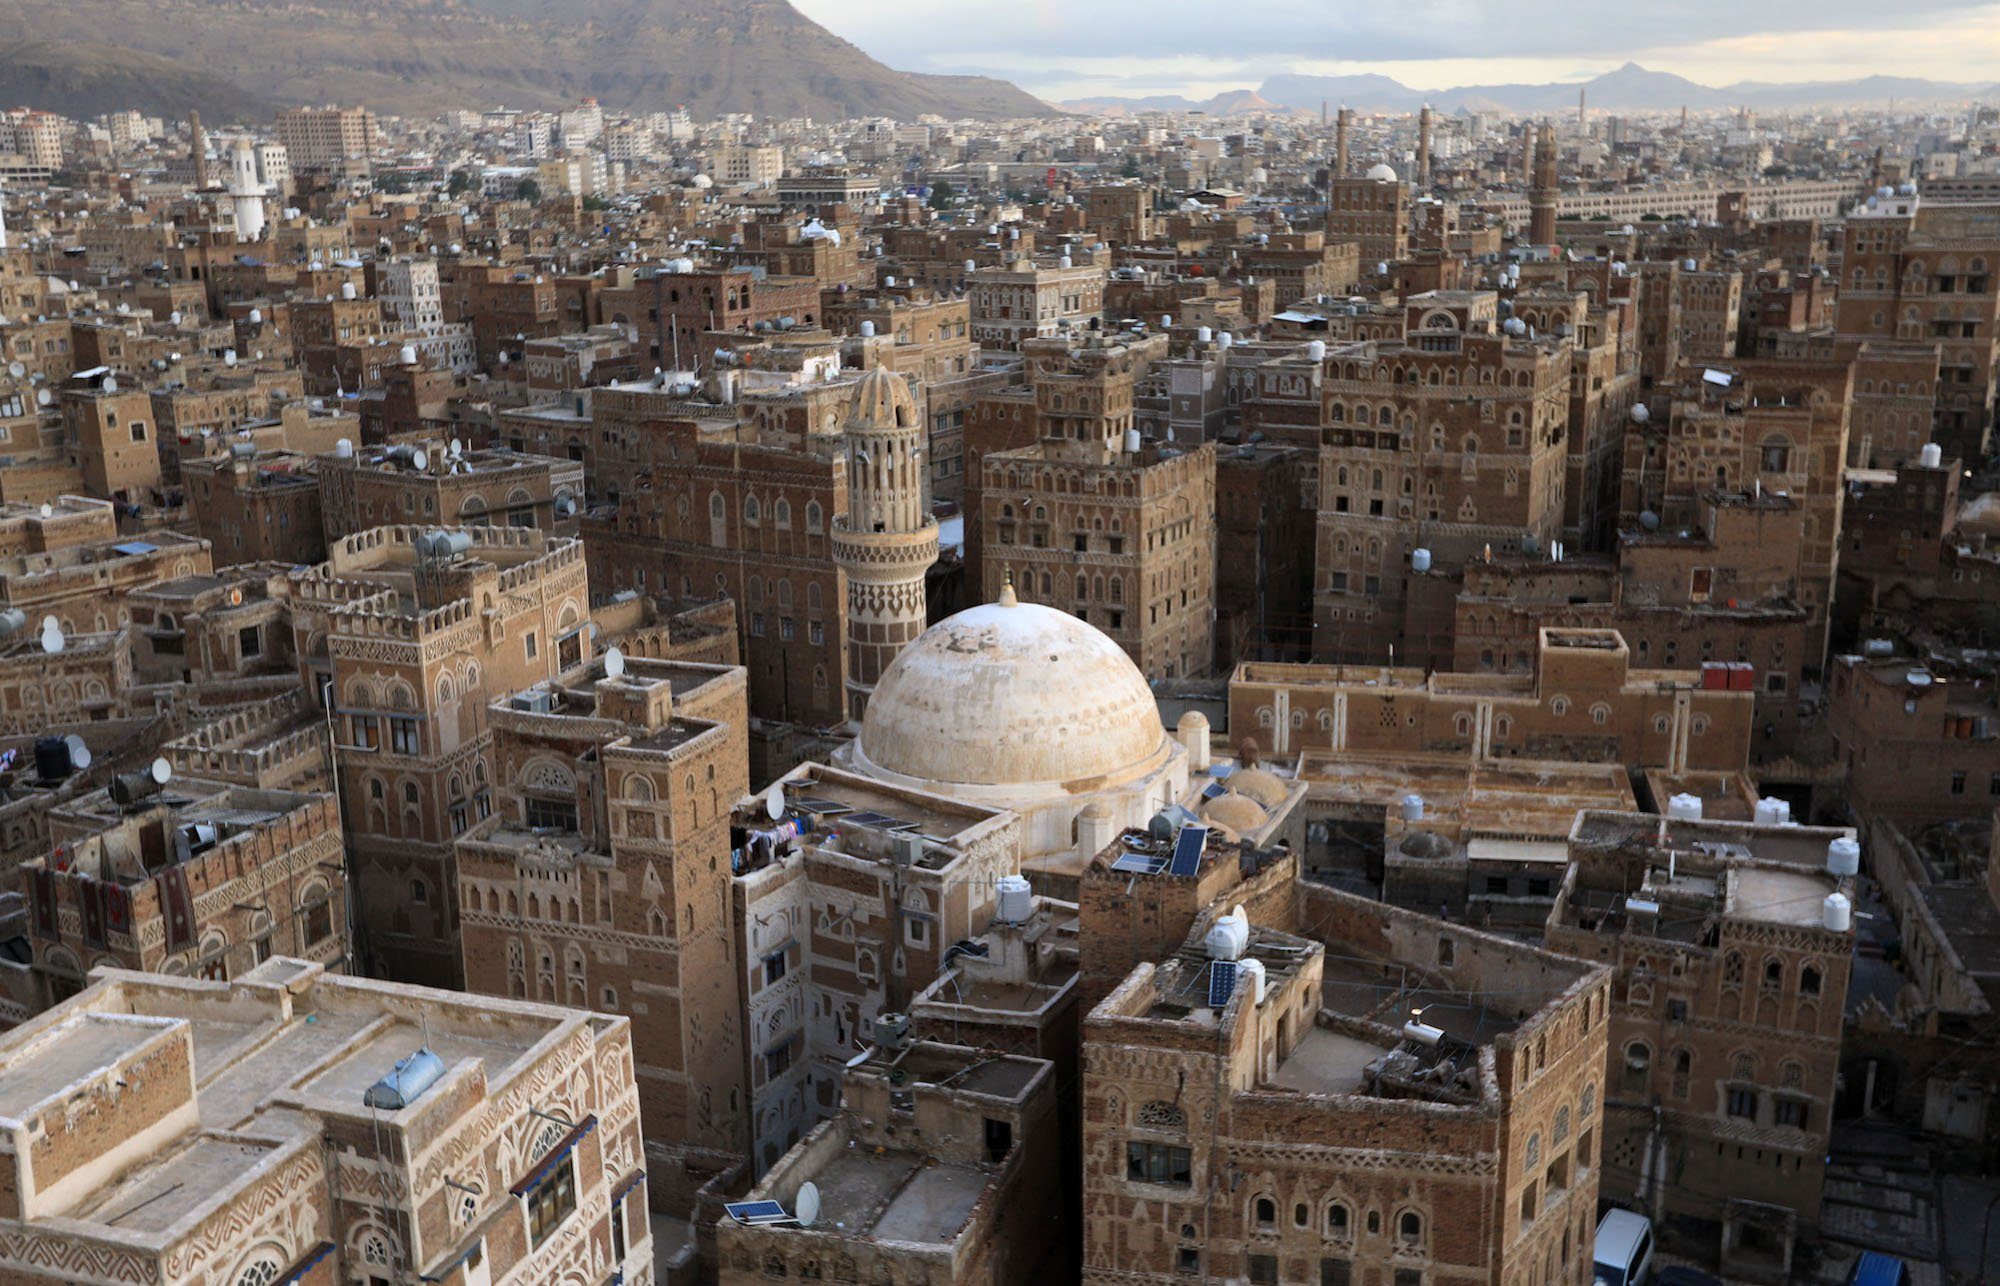 View of Sanaa's Old City, a UNSECO heritage site, and its mud houses